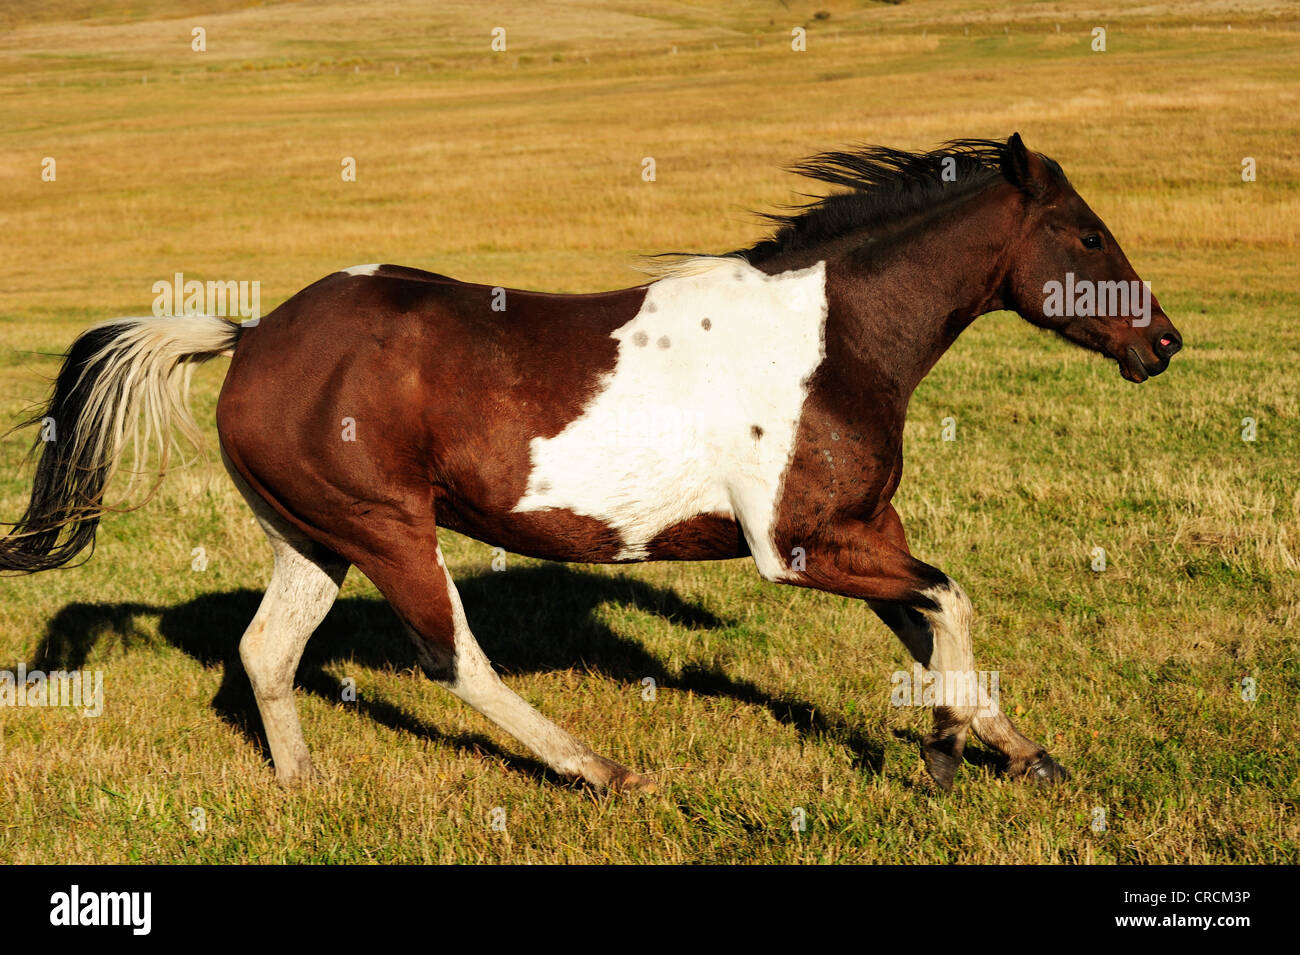 Horse galloping across the prairie, Saskatchewan, Canada - Stock Image